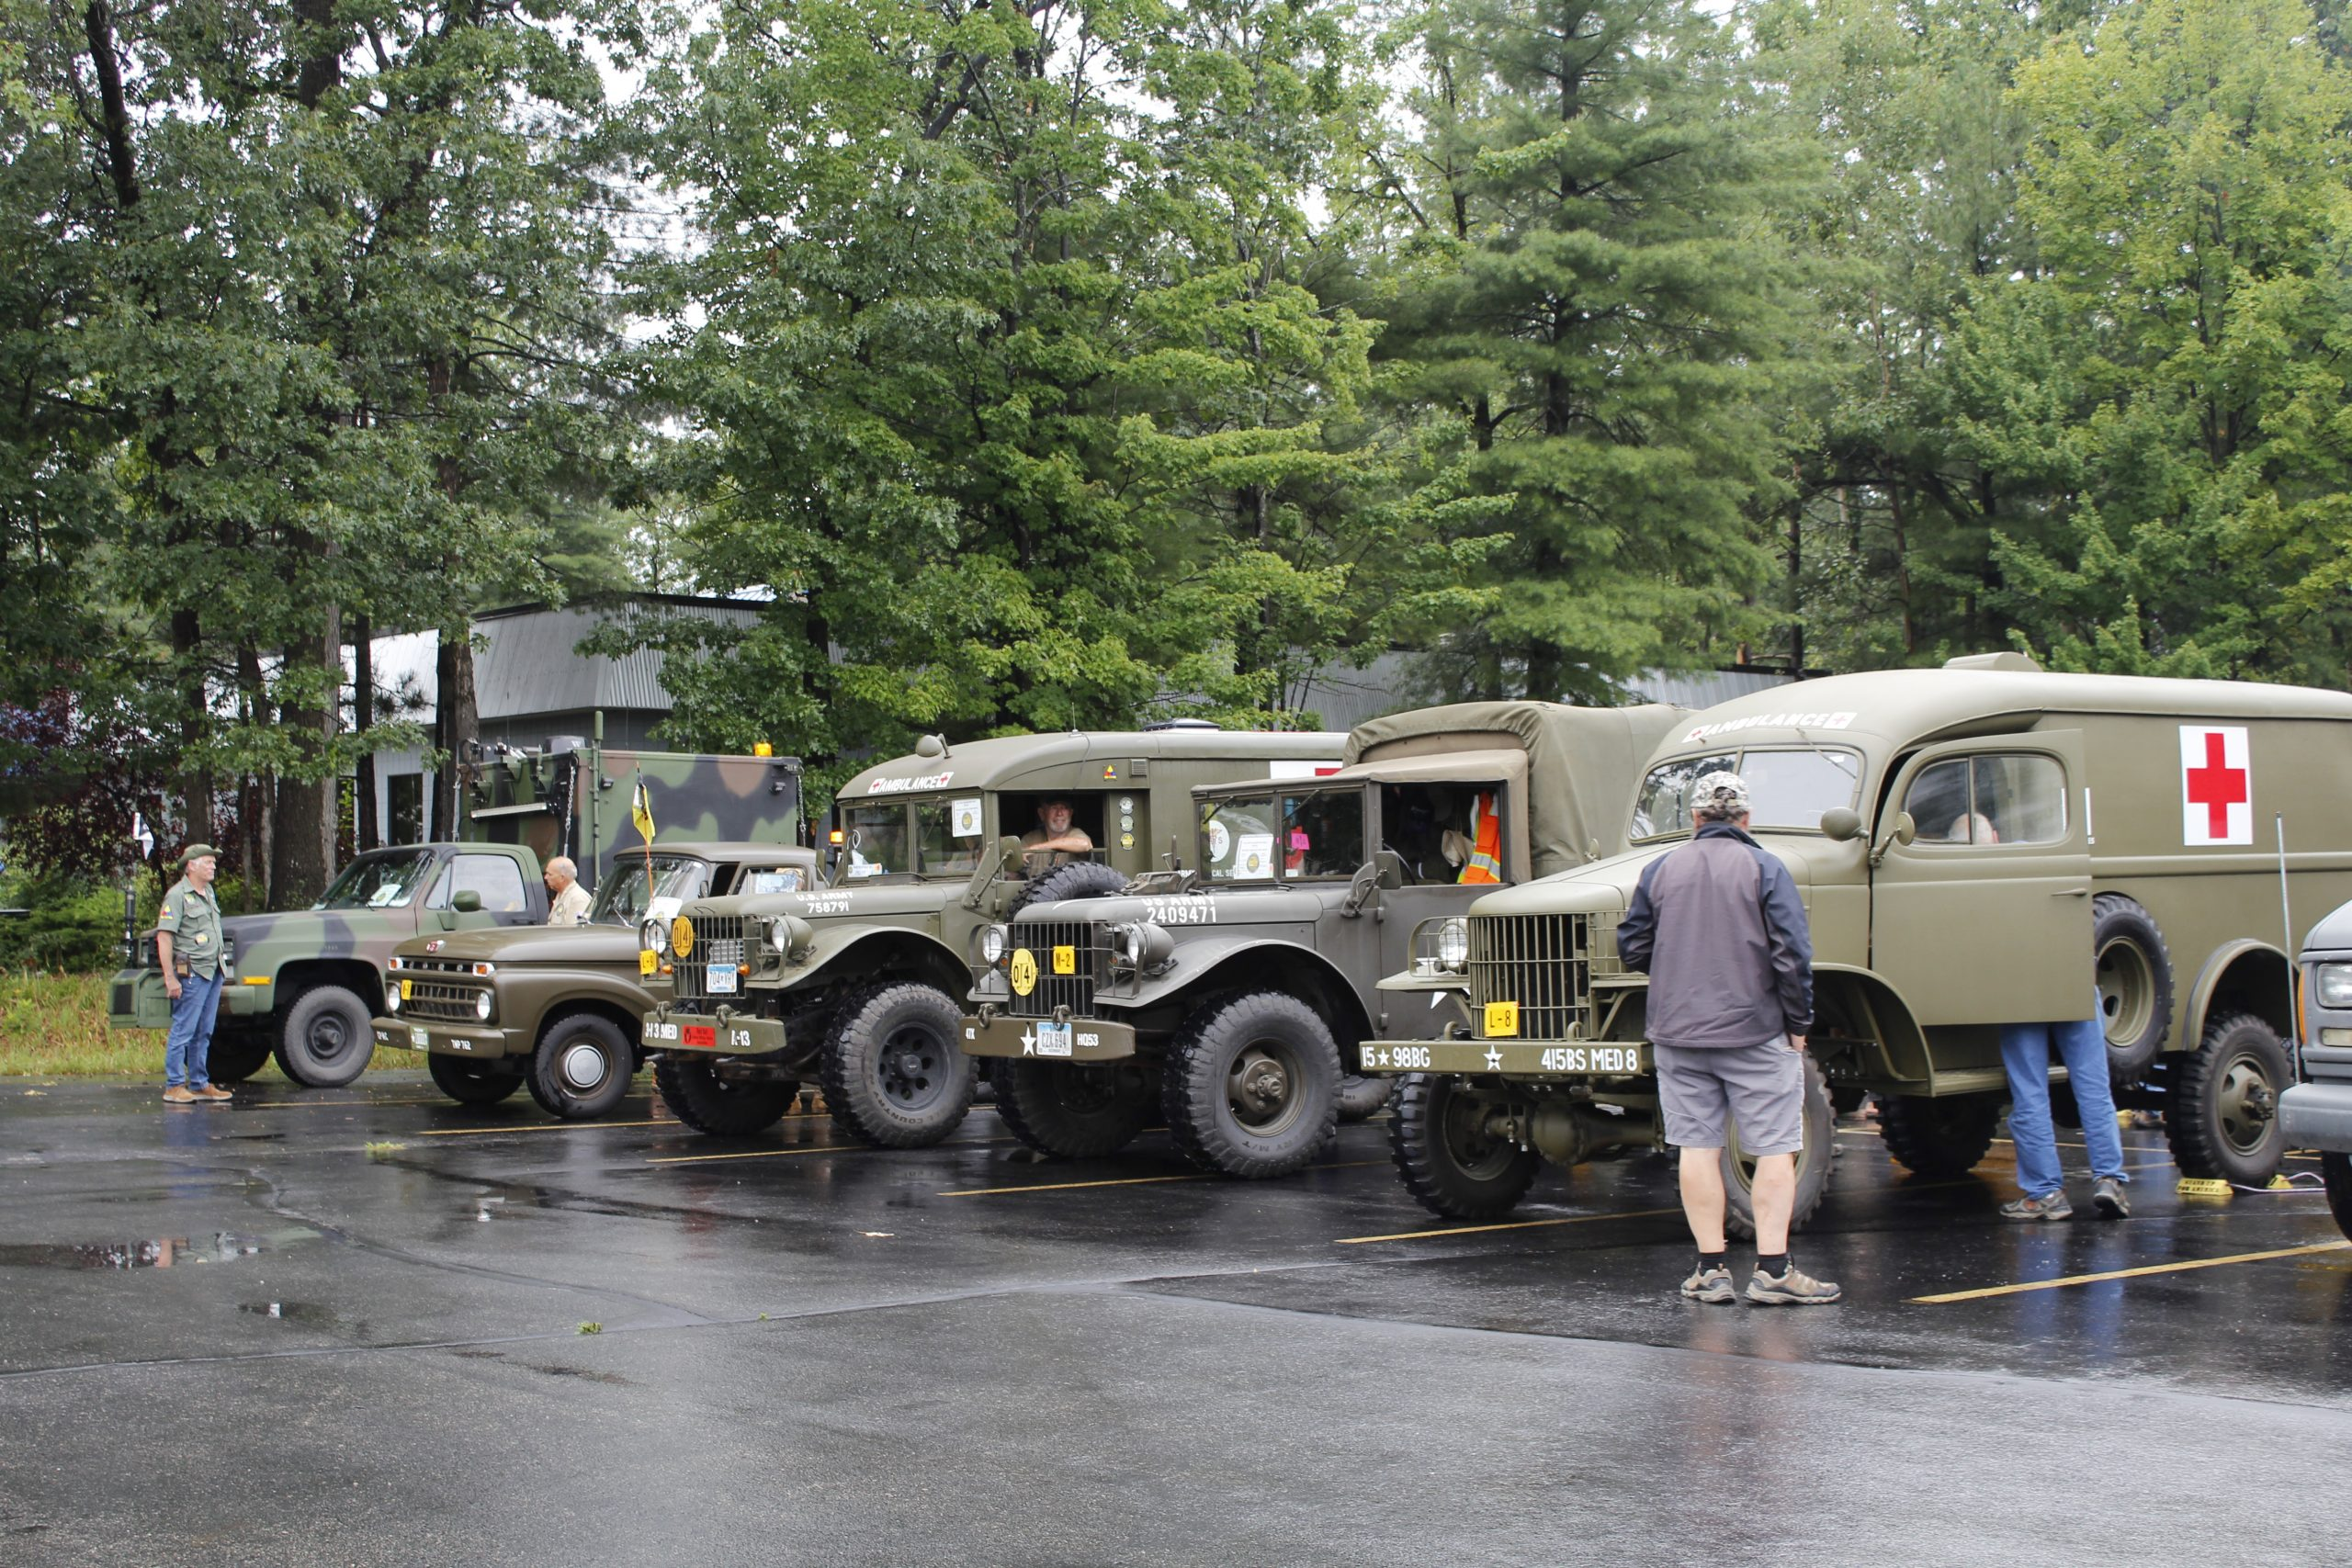 Military vehicle convoy parking lineup